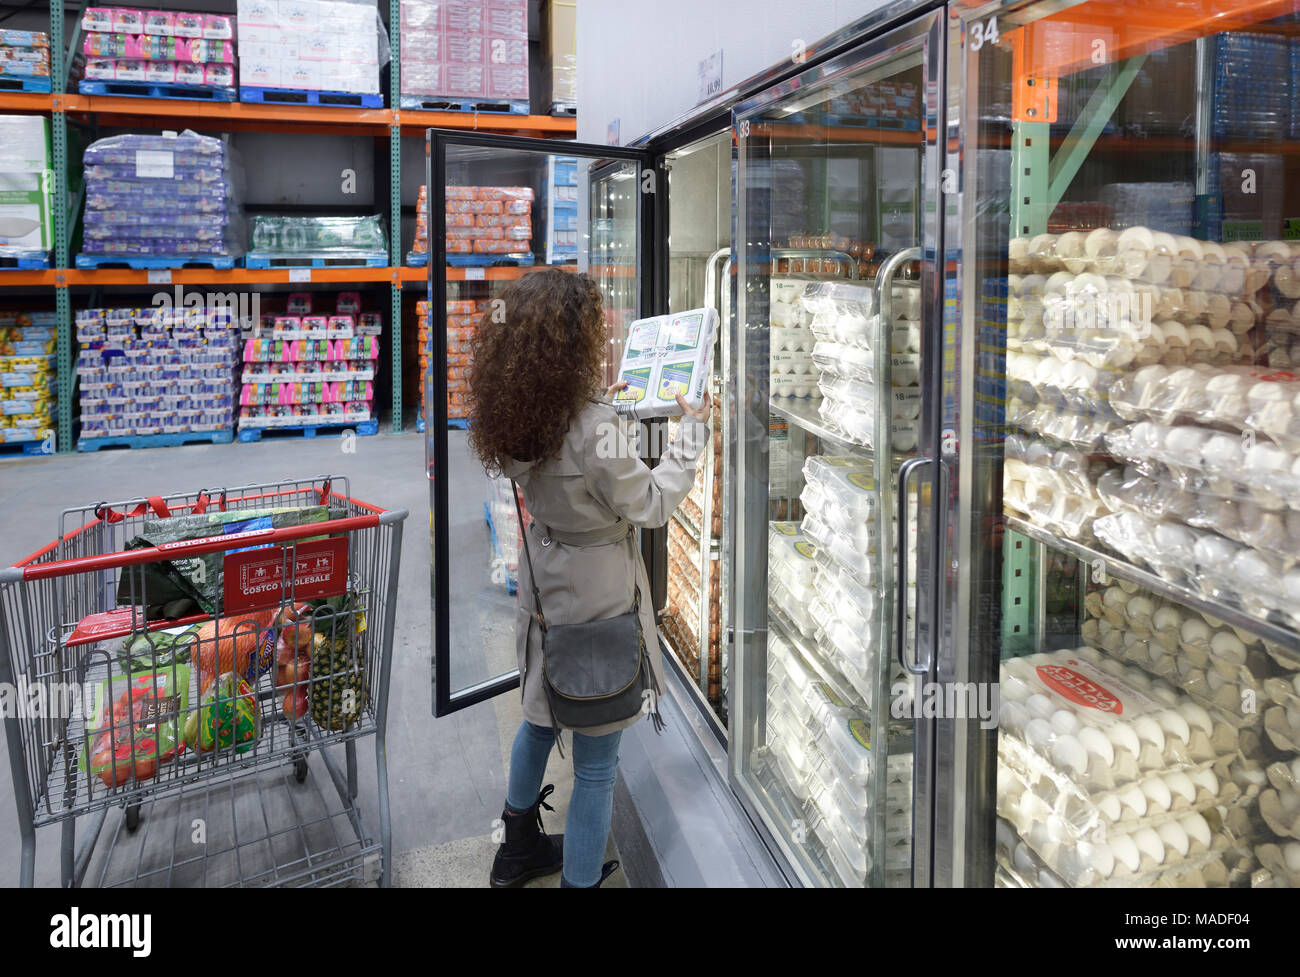 Woman picking a crate of omega-3 eggs from a fridge at Costco Wholesale membership warehouse store food section. British Columbia, Canada 2017. Stock Photo